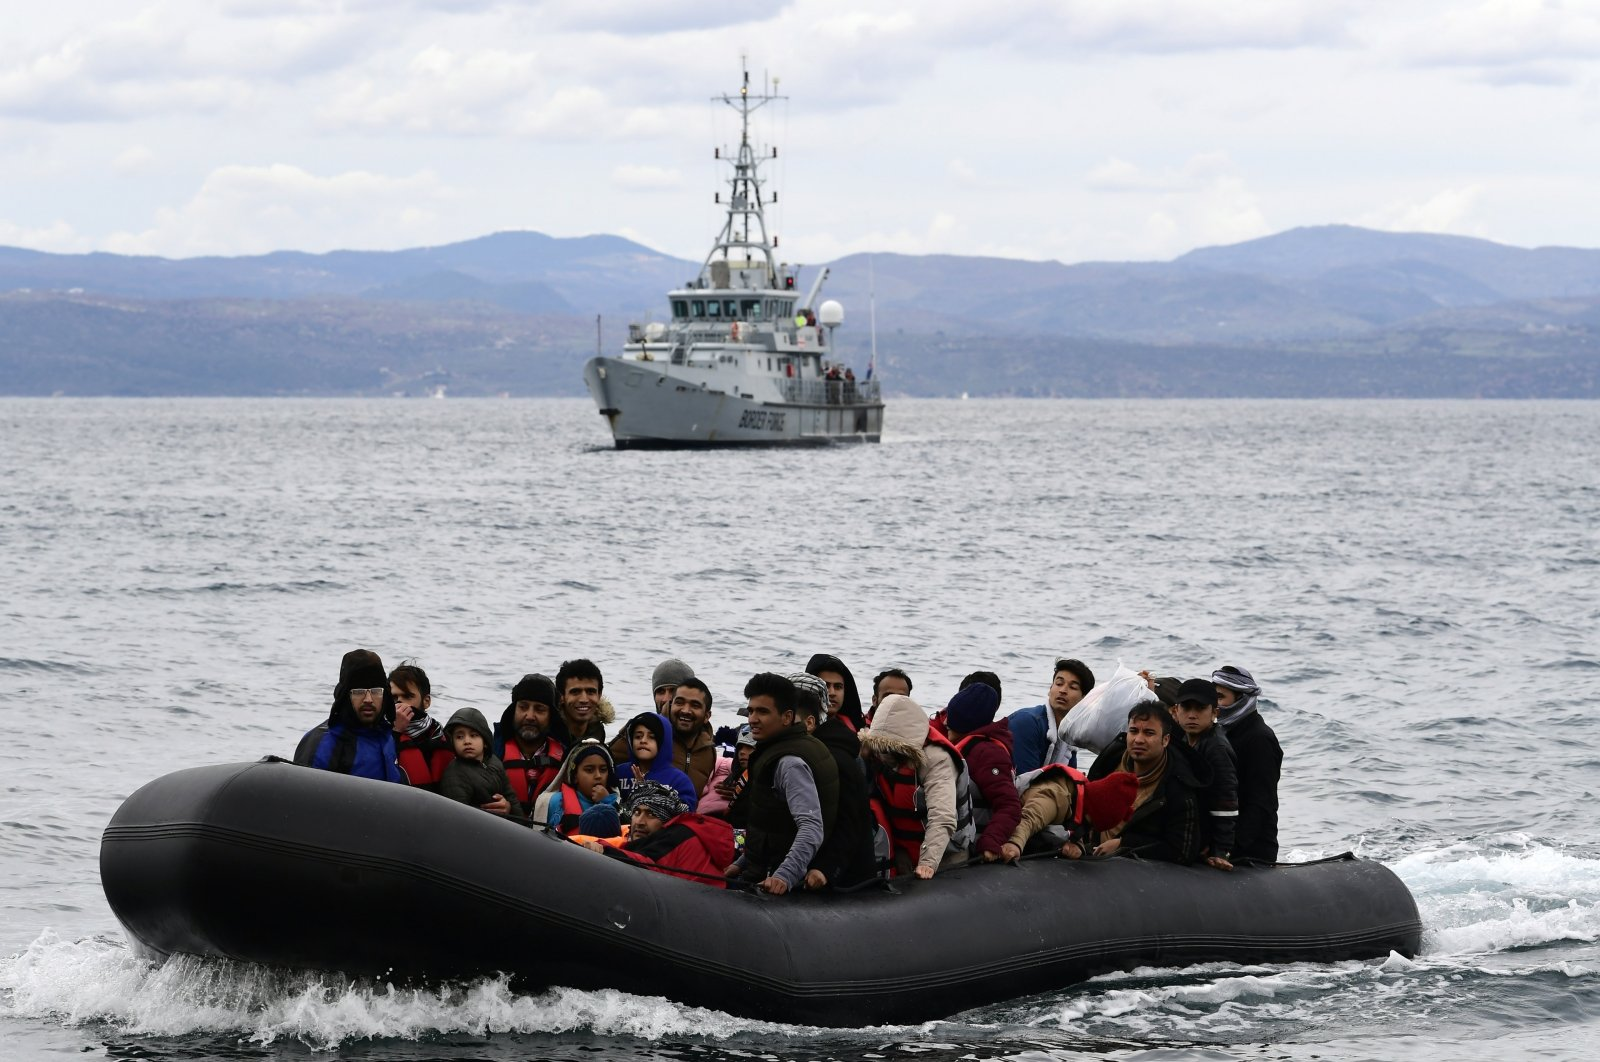 Migrants arrive with a dinghy accompanied by a Frontex vessel at the village of Skala Sikaminias, on the Greek island of Lesbos, after crossing the Aegean sea from Turkey, Feb. 28, 2020. (AP Photo)